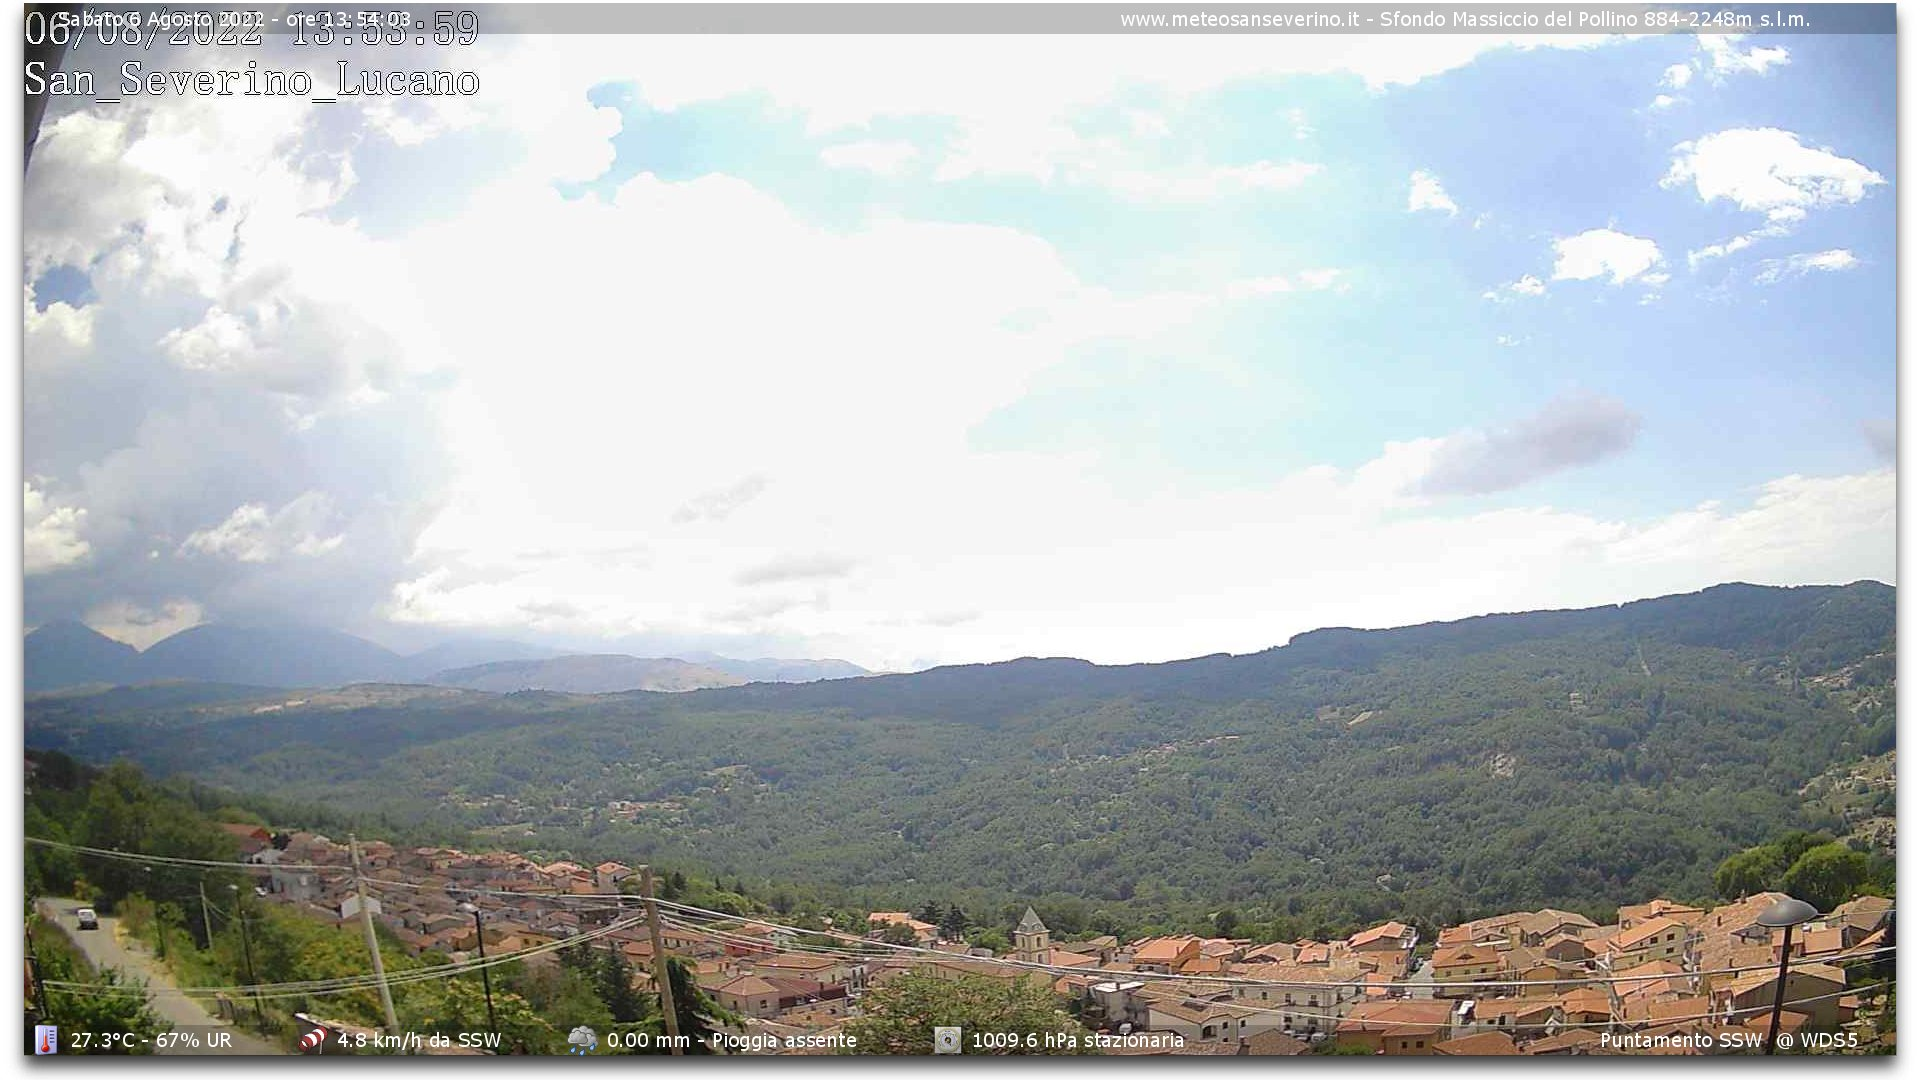 http://www.meteosanseverino.it/joomla/webcam/cam.jpg